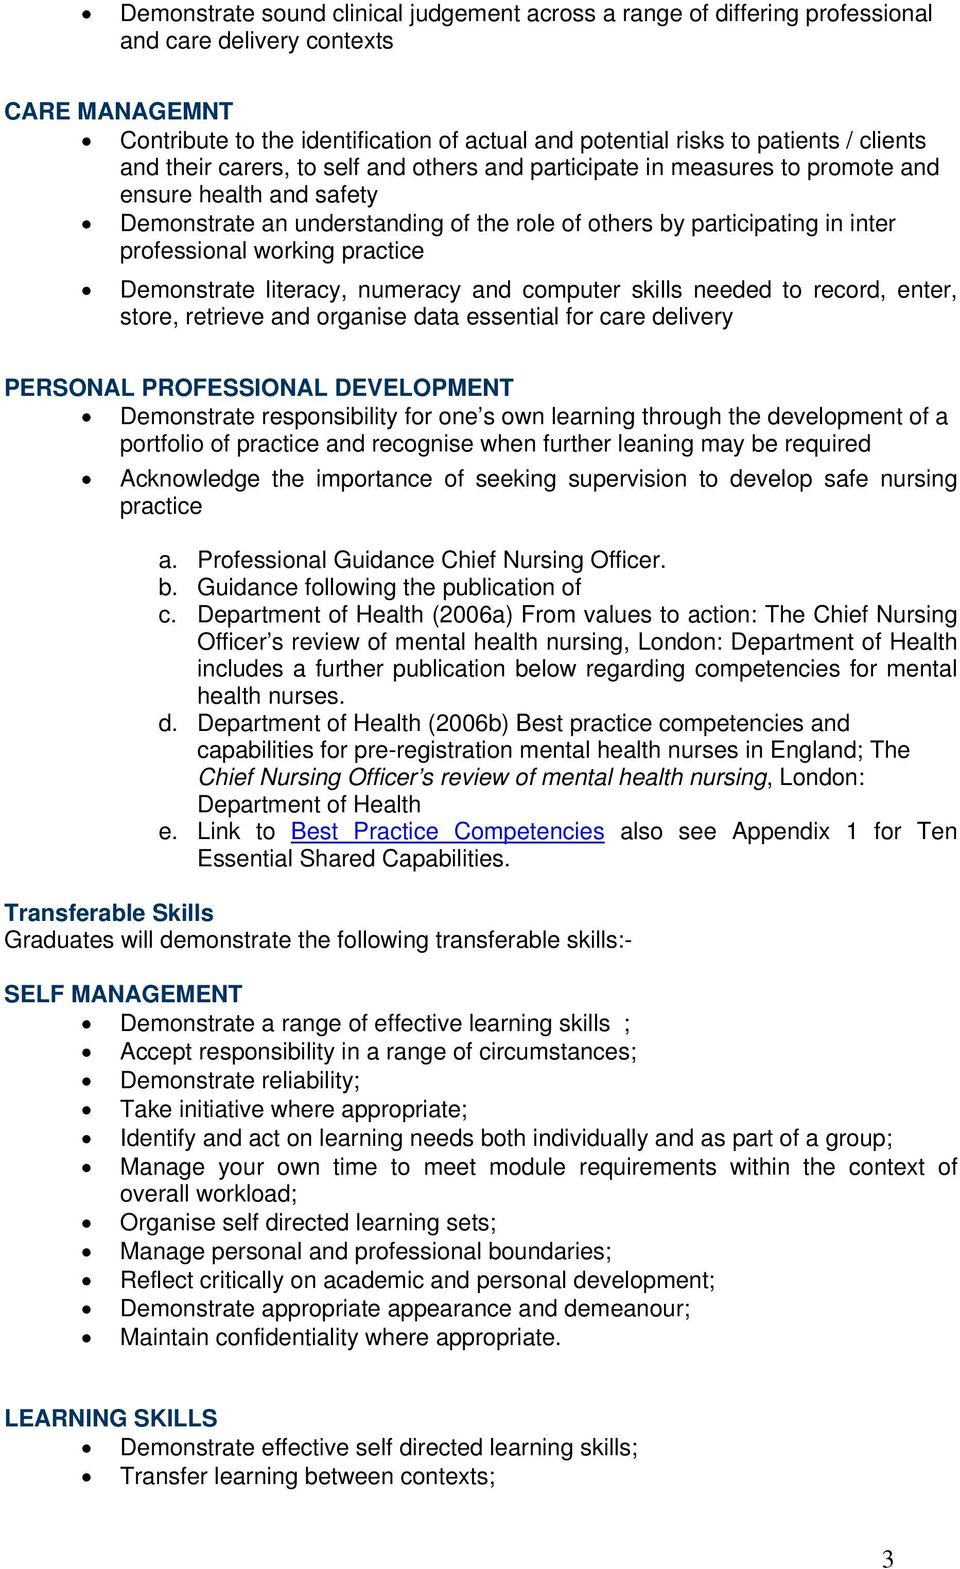 professional working practice Demonstrate literacy, numeracy and computer skills needed to record, enter, store, retrieve and organise data essential for care delivery PERSONAL PROFESSIONAL